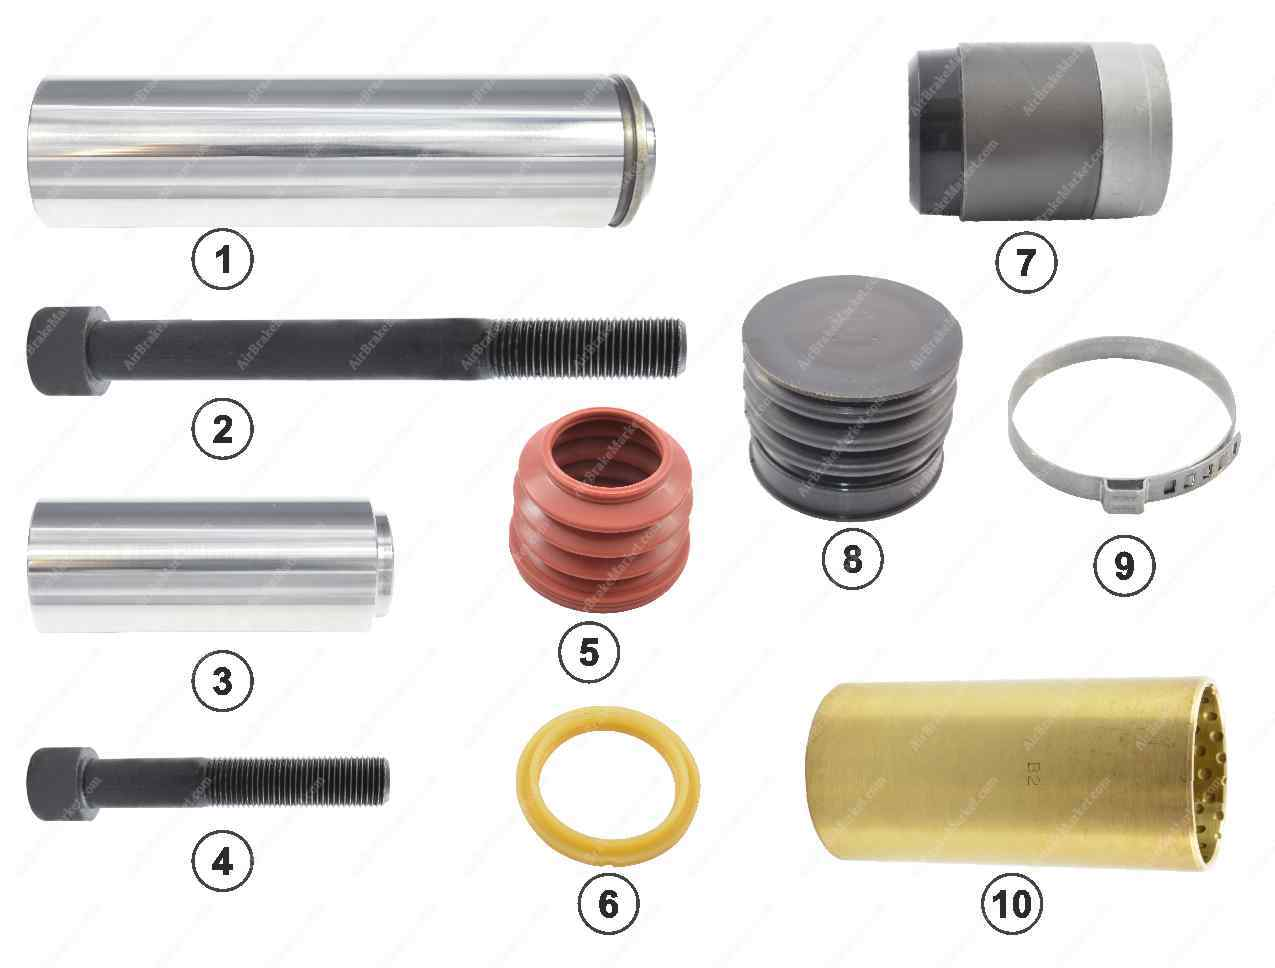 GK81016 Guide pin and seal kit SB6, SB7 Knorr-Bremse Caliper K000687, K000386, 1603326